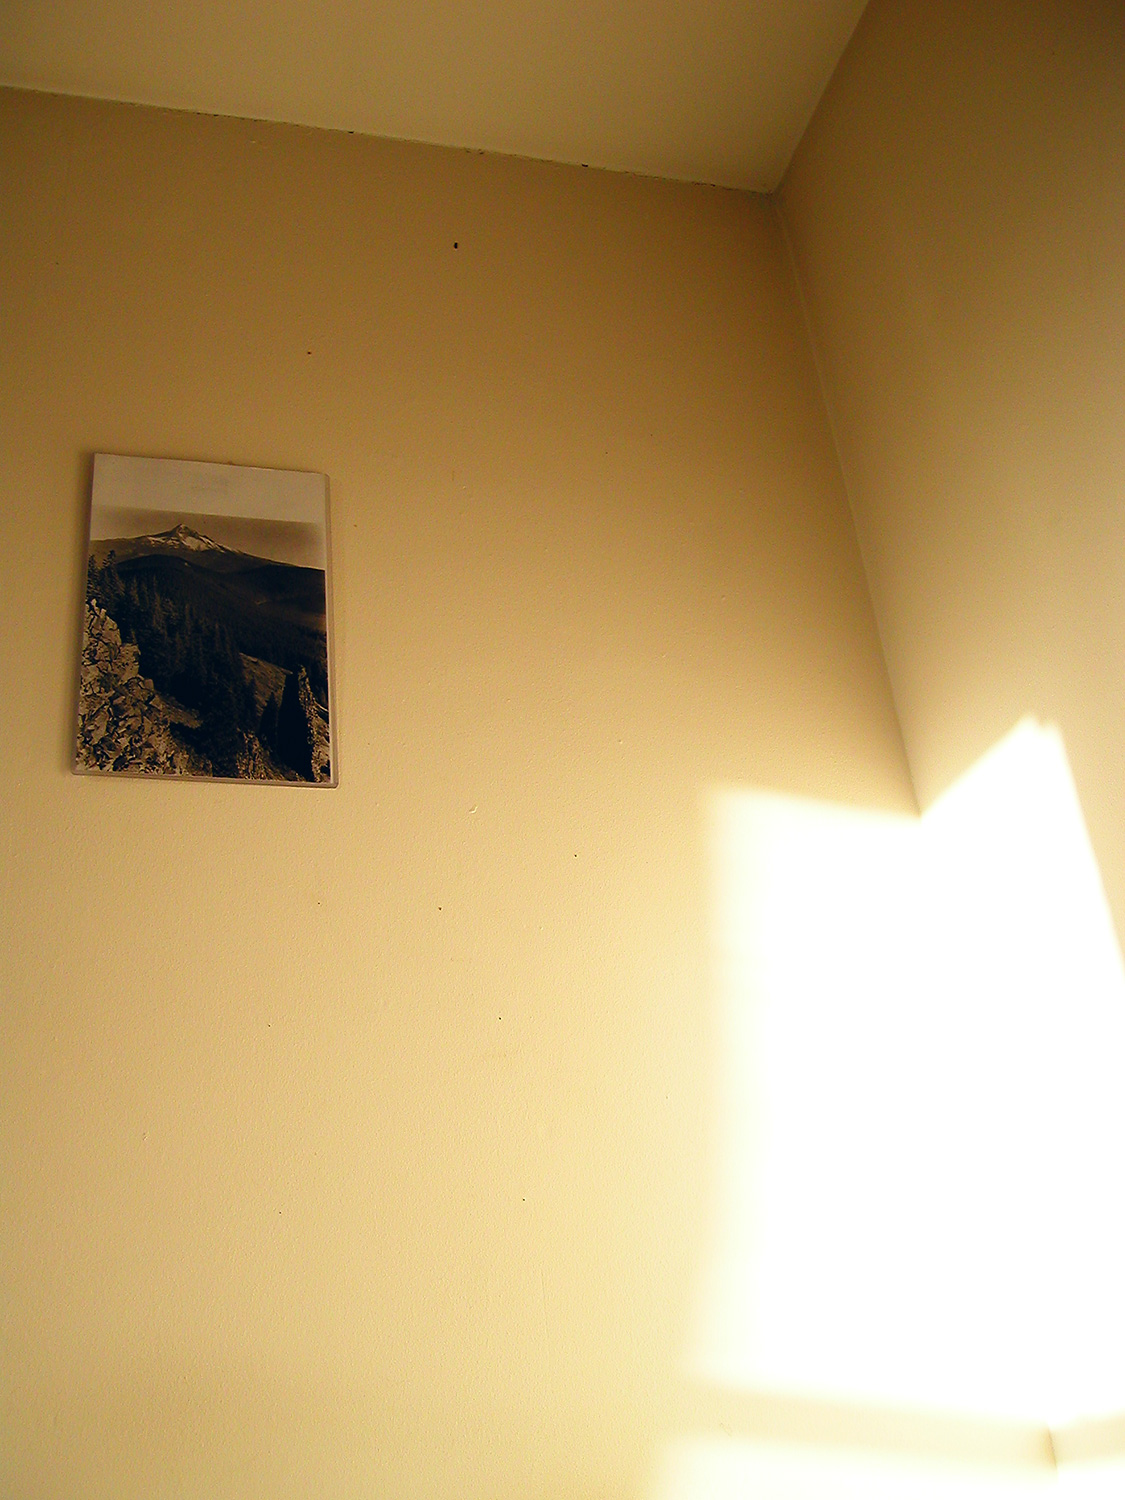 It is a corner, with shadow and light.